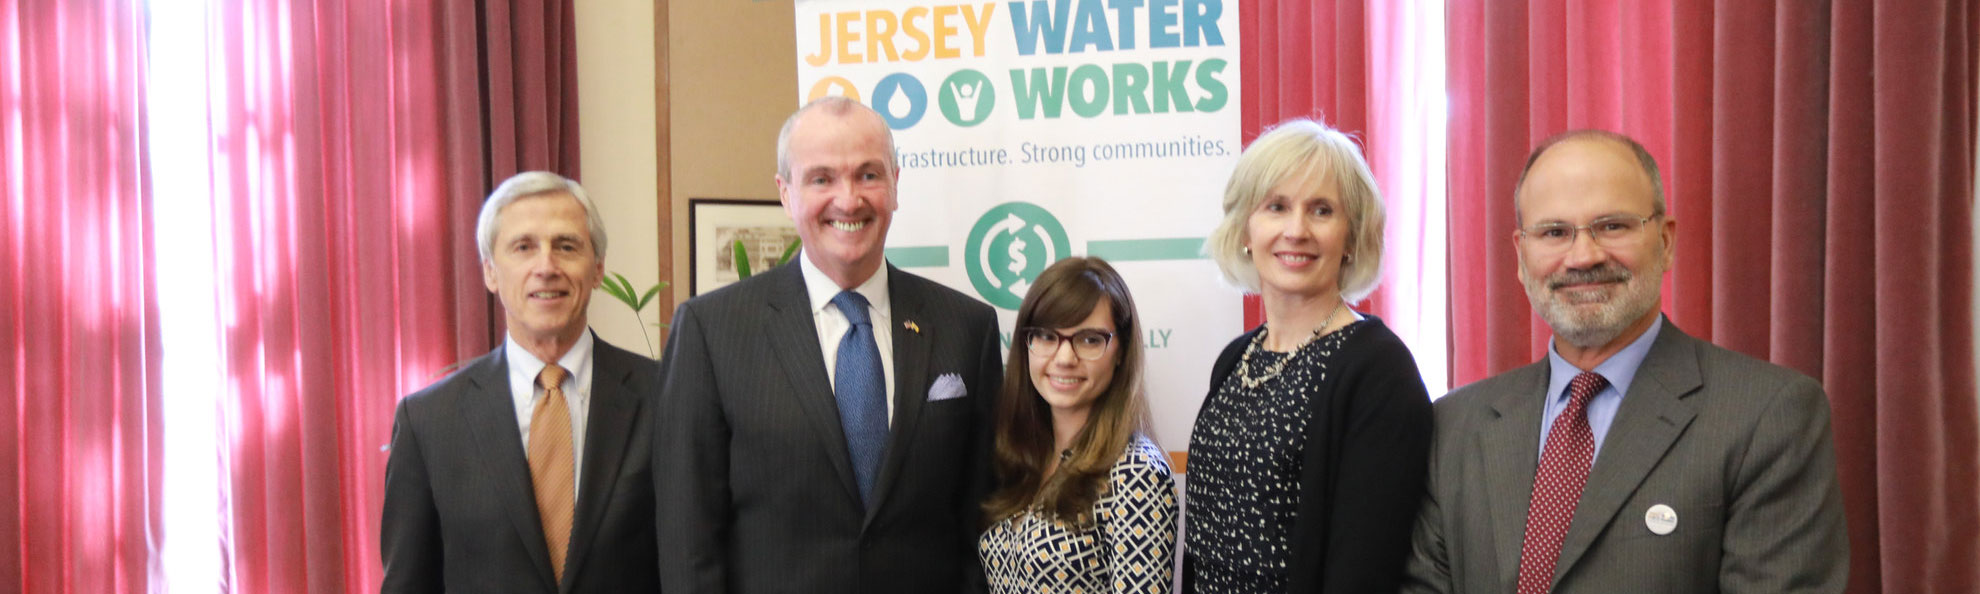 Governor Murphy Outlines Comprehensive Statewide Plan to Address Lead Exposure in New Jersey